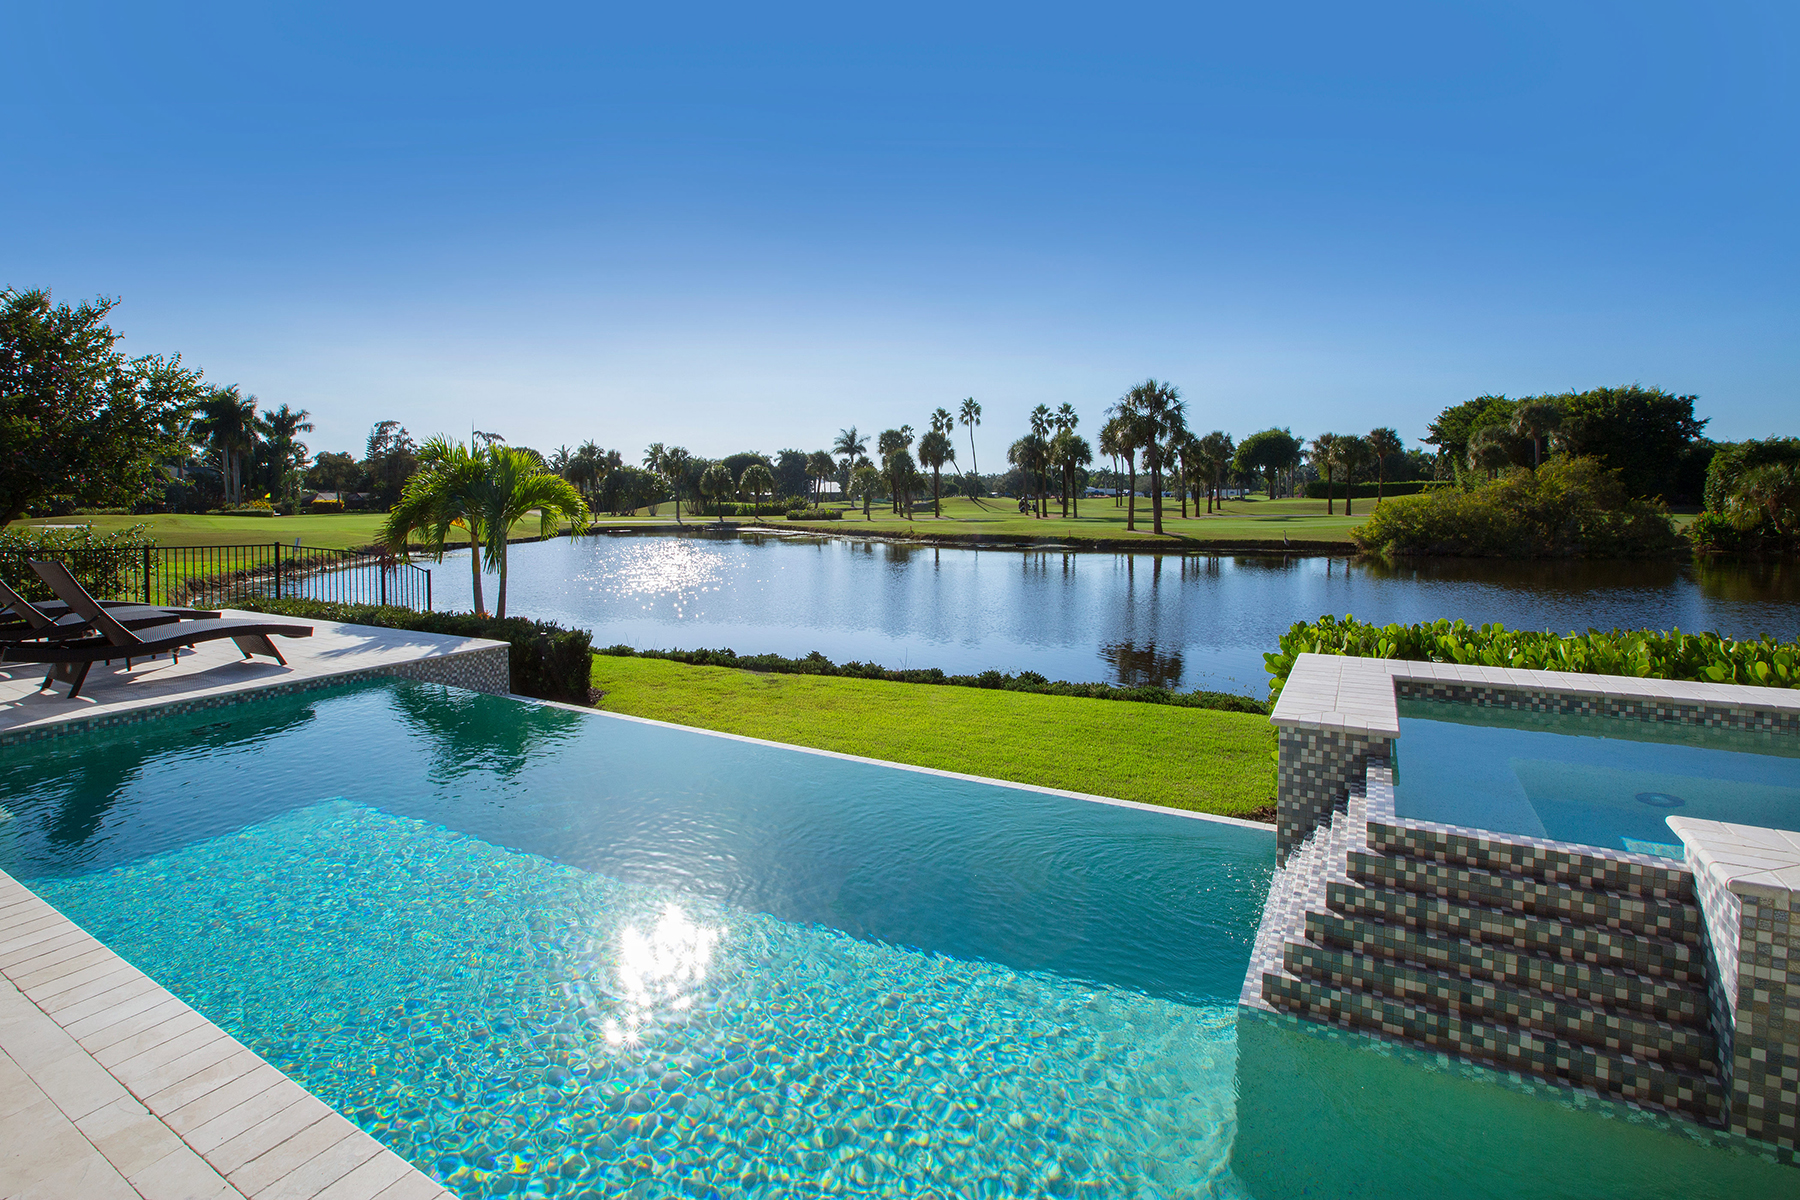 Single Family Home for Sale at MOORINGS 825 Wedge Dr, Naples, Florida 34103 United States